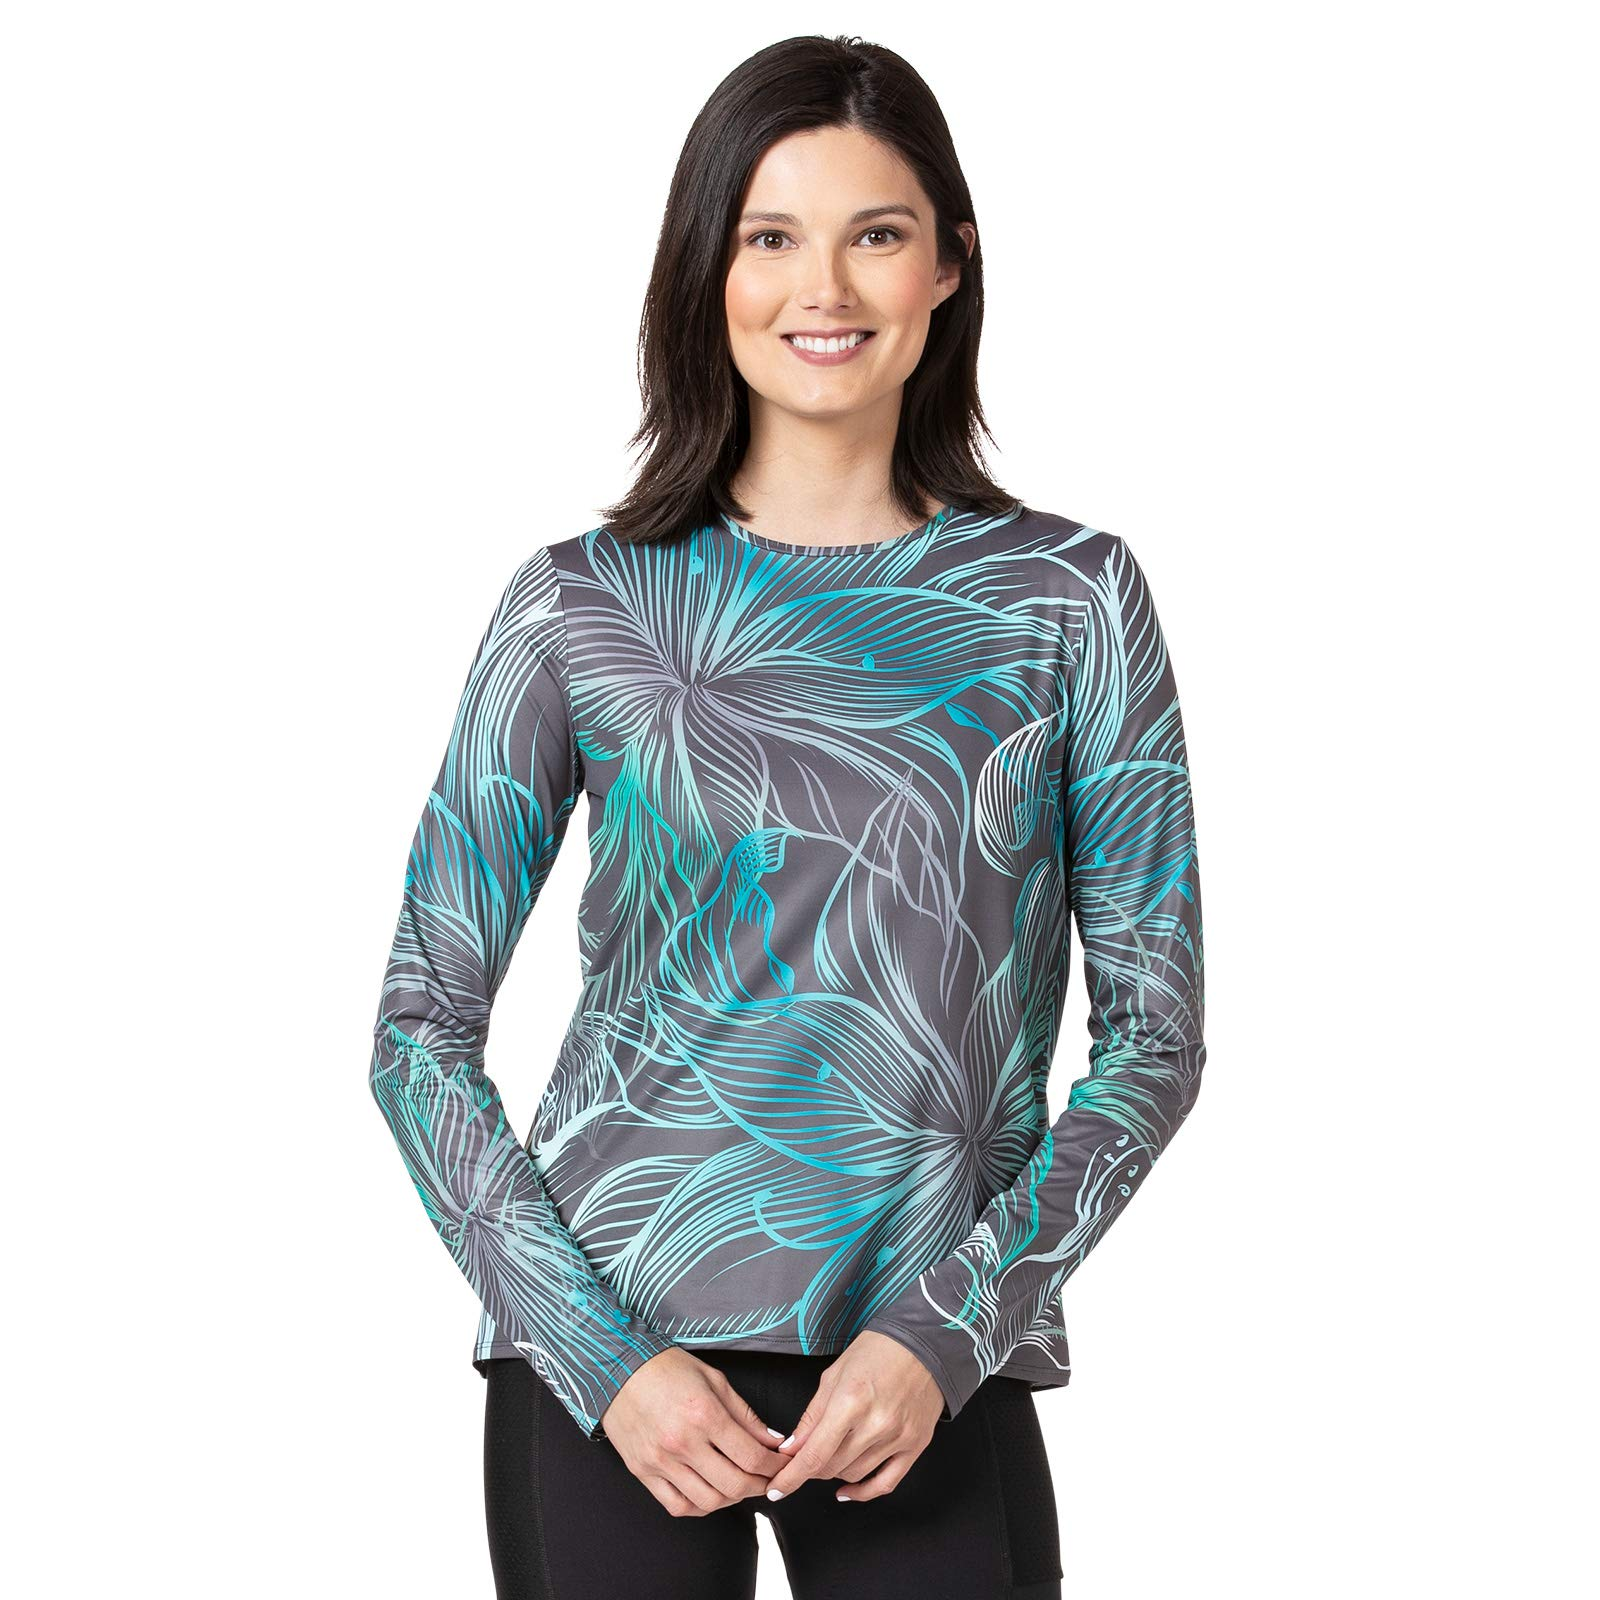 Terry Women's Soleil Flow Long Sleeve Athletic Top Loose Fit UPF 50+ Protection Lightweight - X-Ray - Medium by Terry